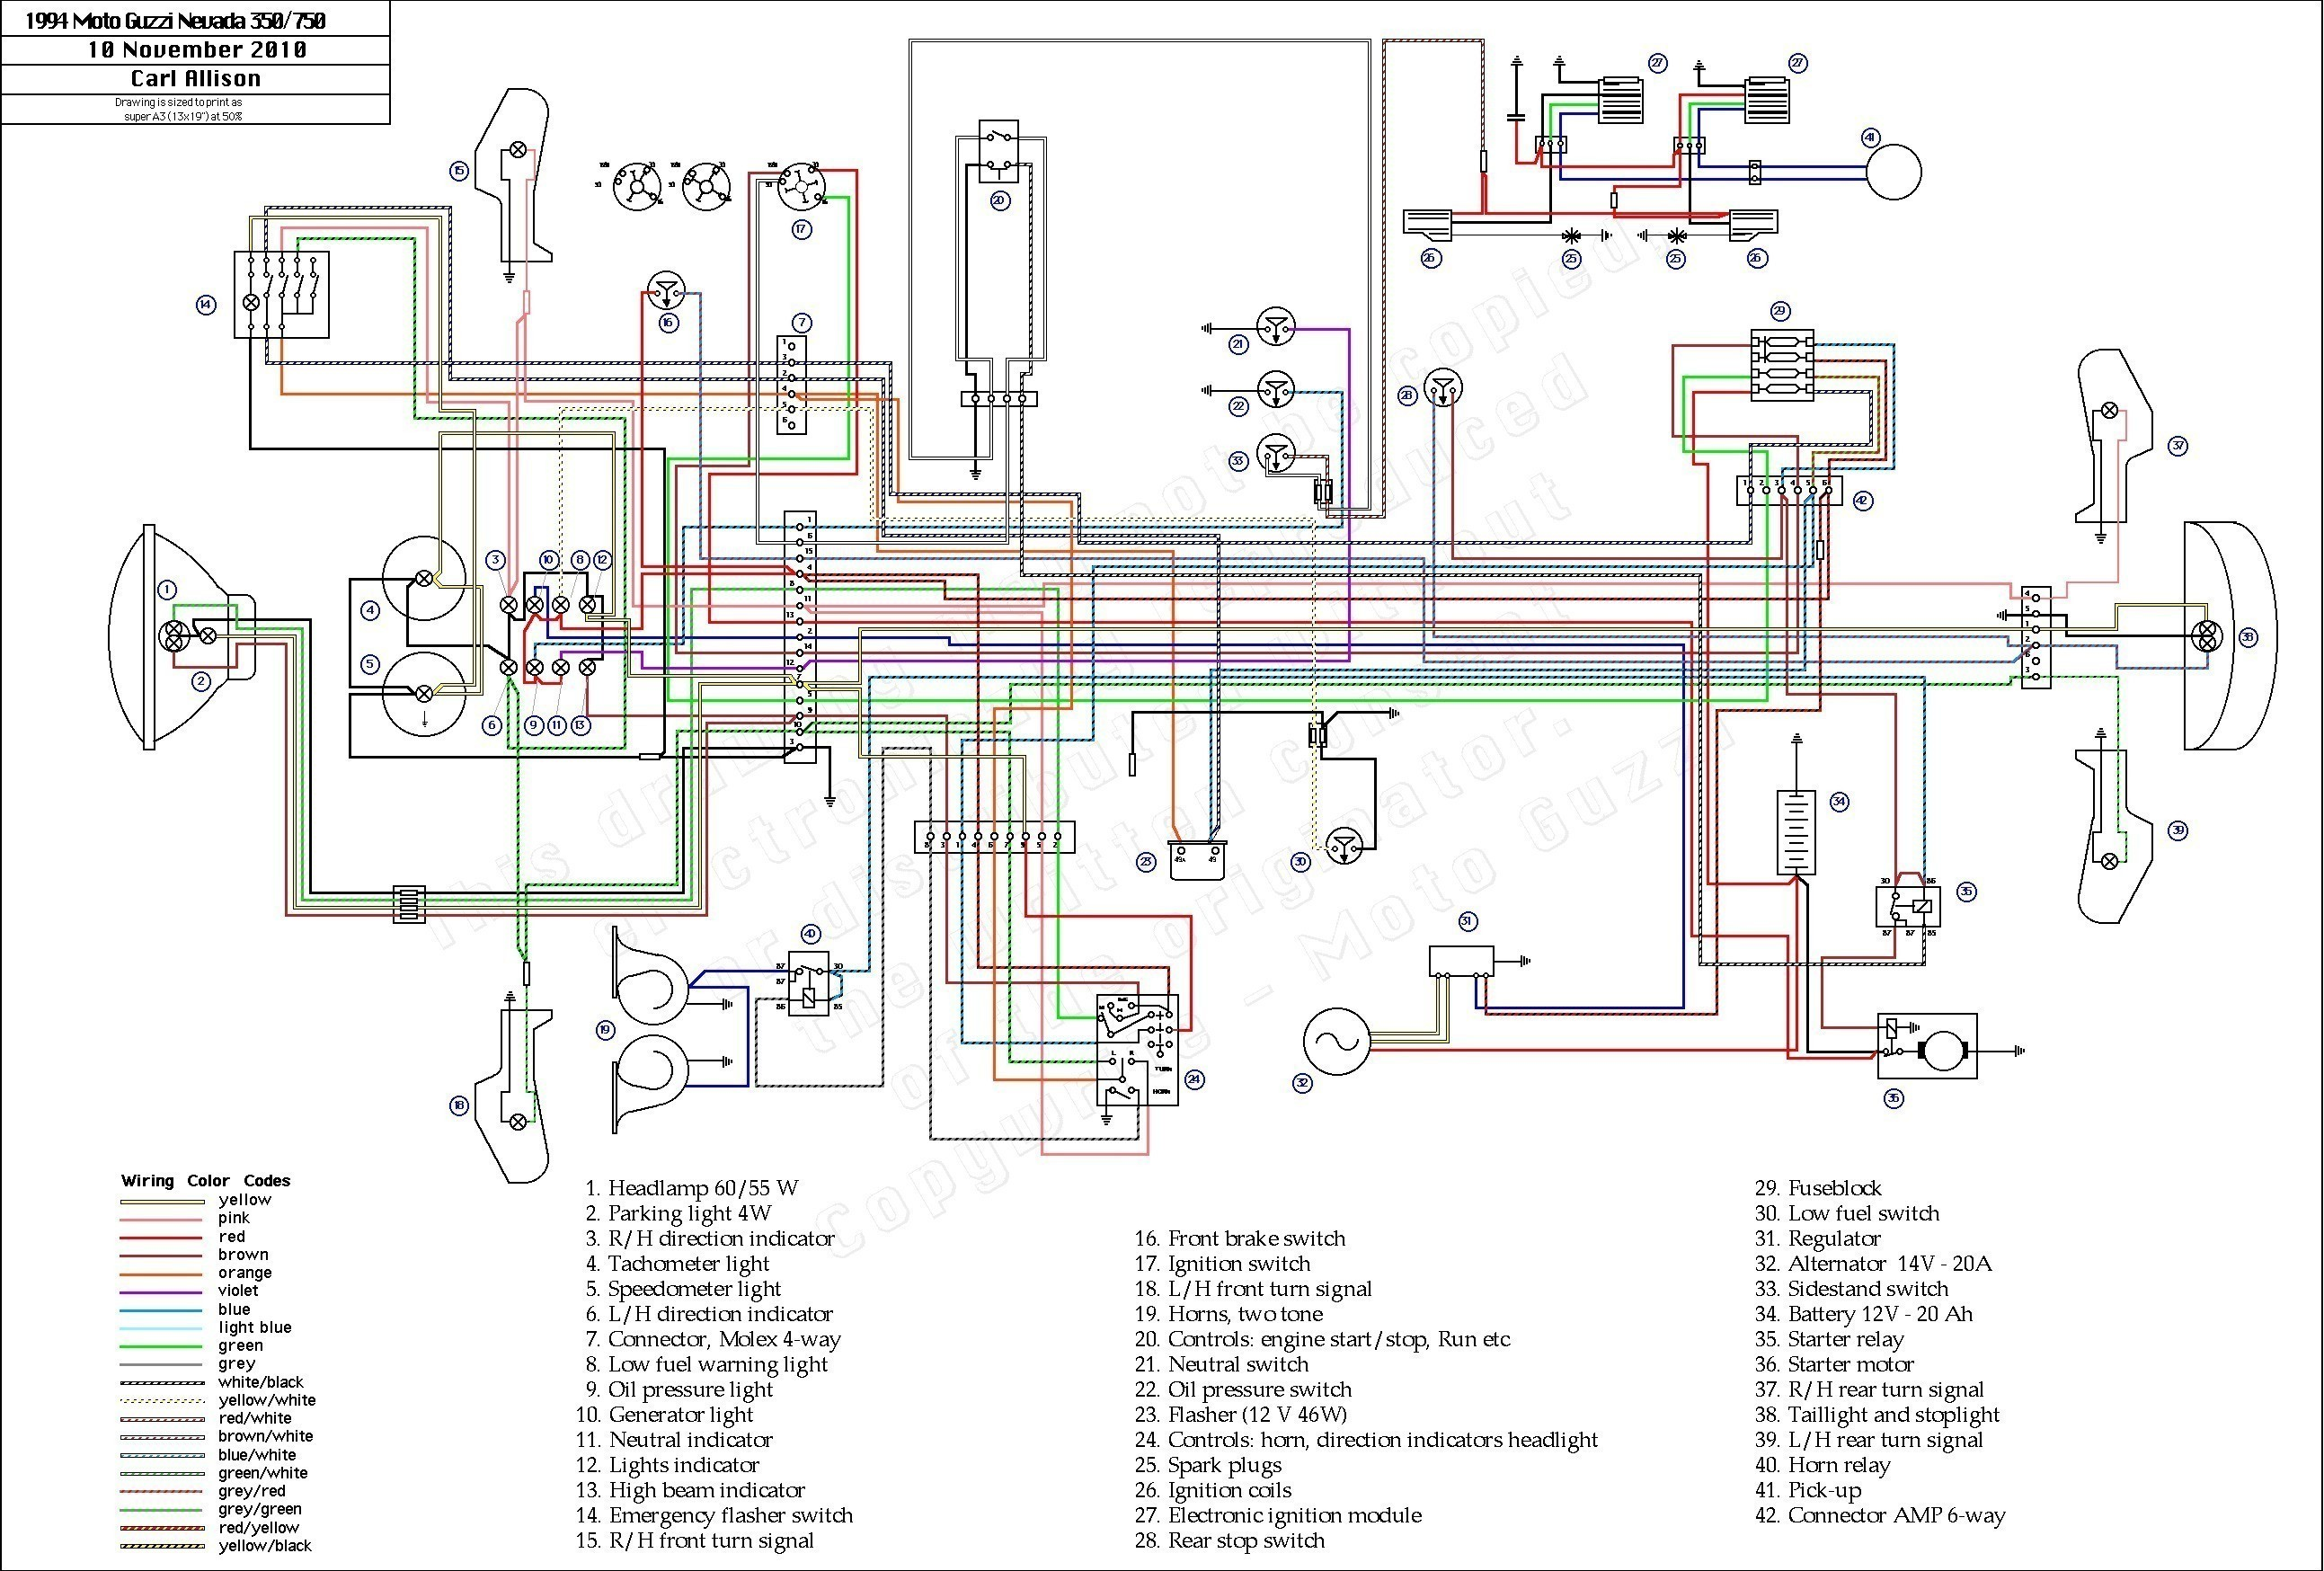 [EQHS_1162]  DIAGRAM] Bmw Wds Bmw Wiring Diagram System V12 3 FULL Version HD Quality  V12 3 - ELECSCHEMATIC1R.SAPONERIACLUB.IT | Wds Bmw Wiring System Diagram |  | elecschematic1r.saponeriaclub.it